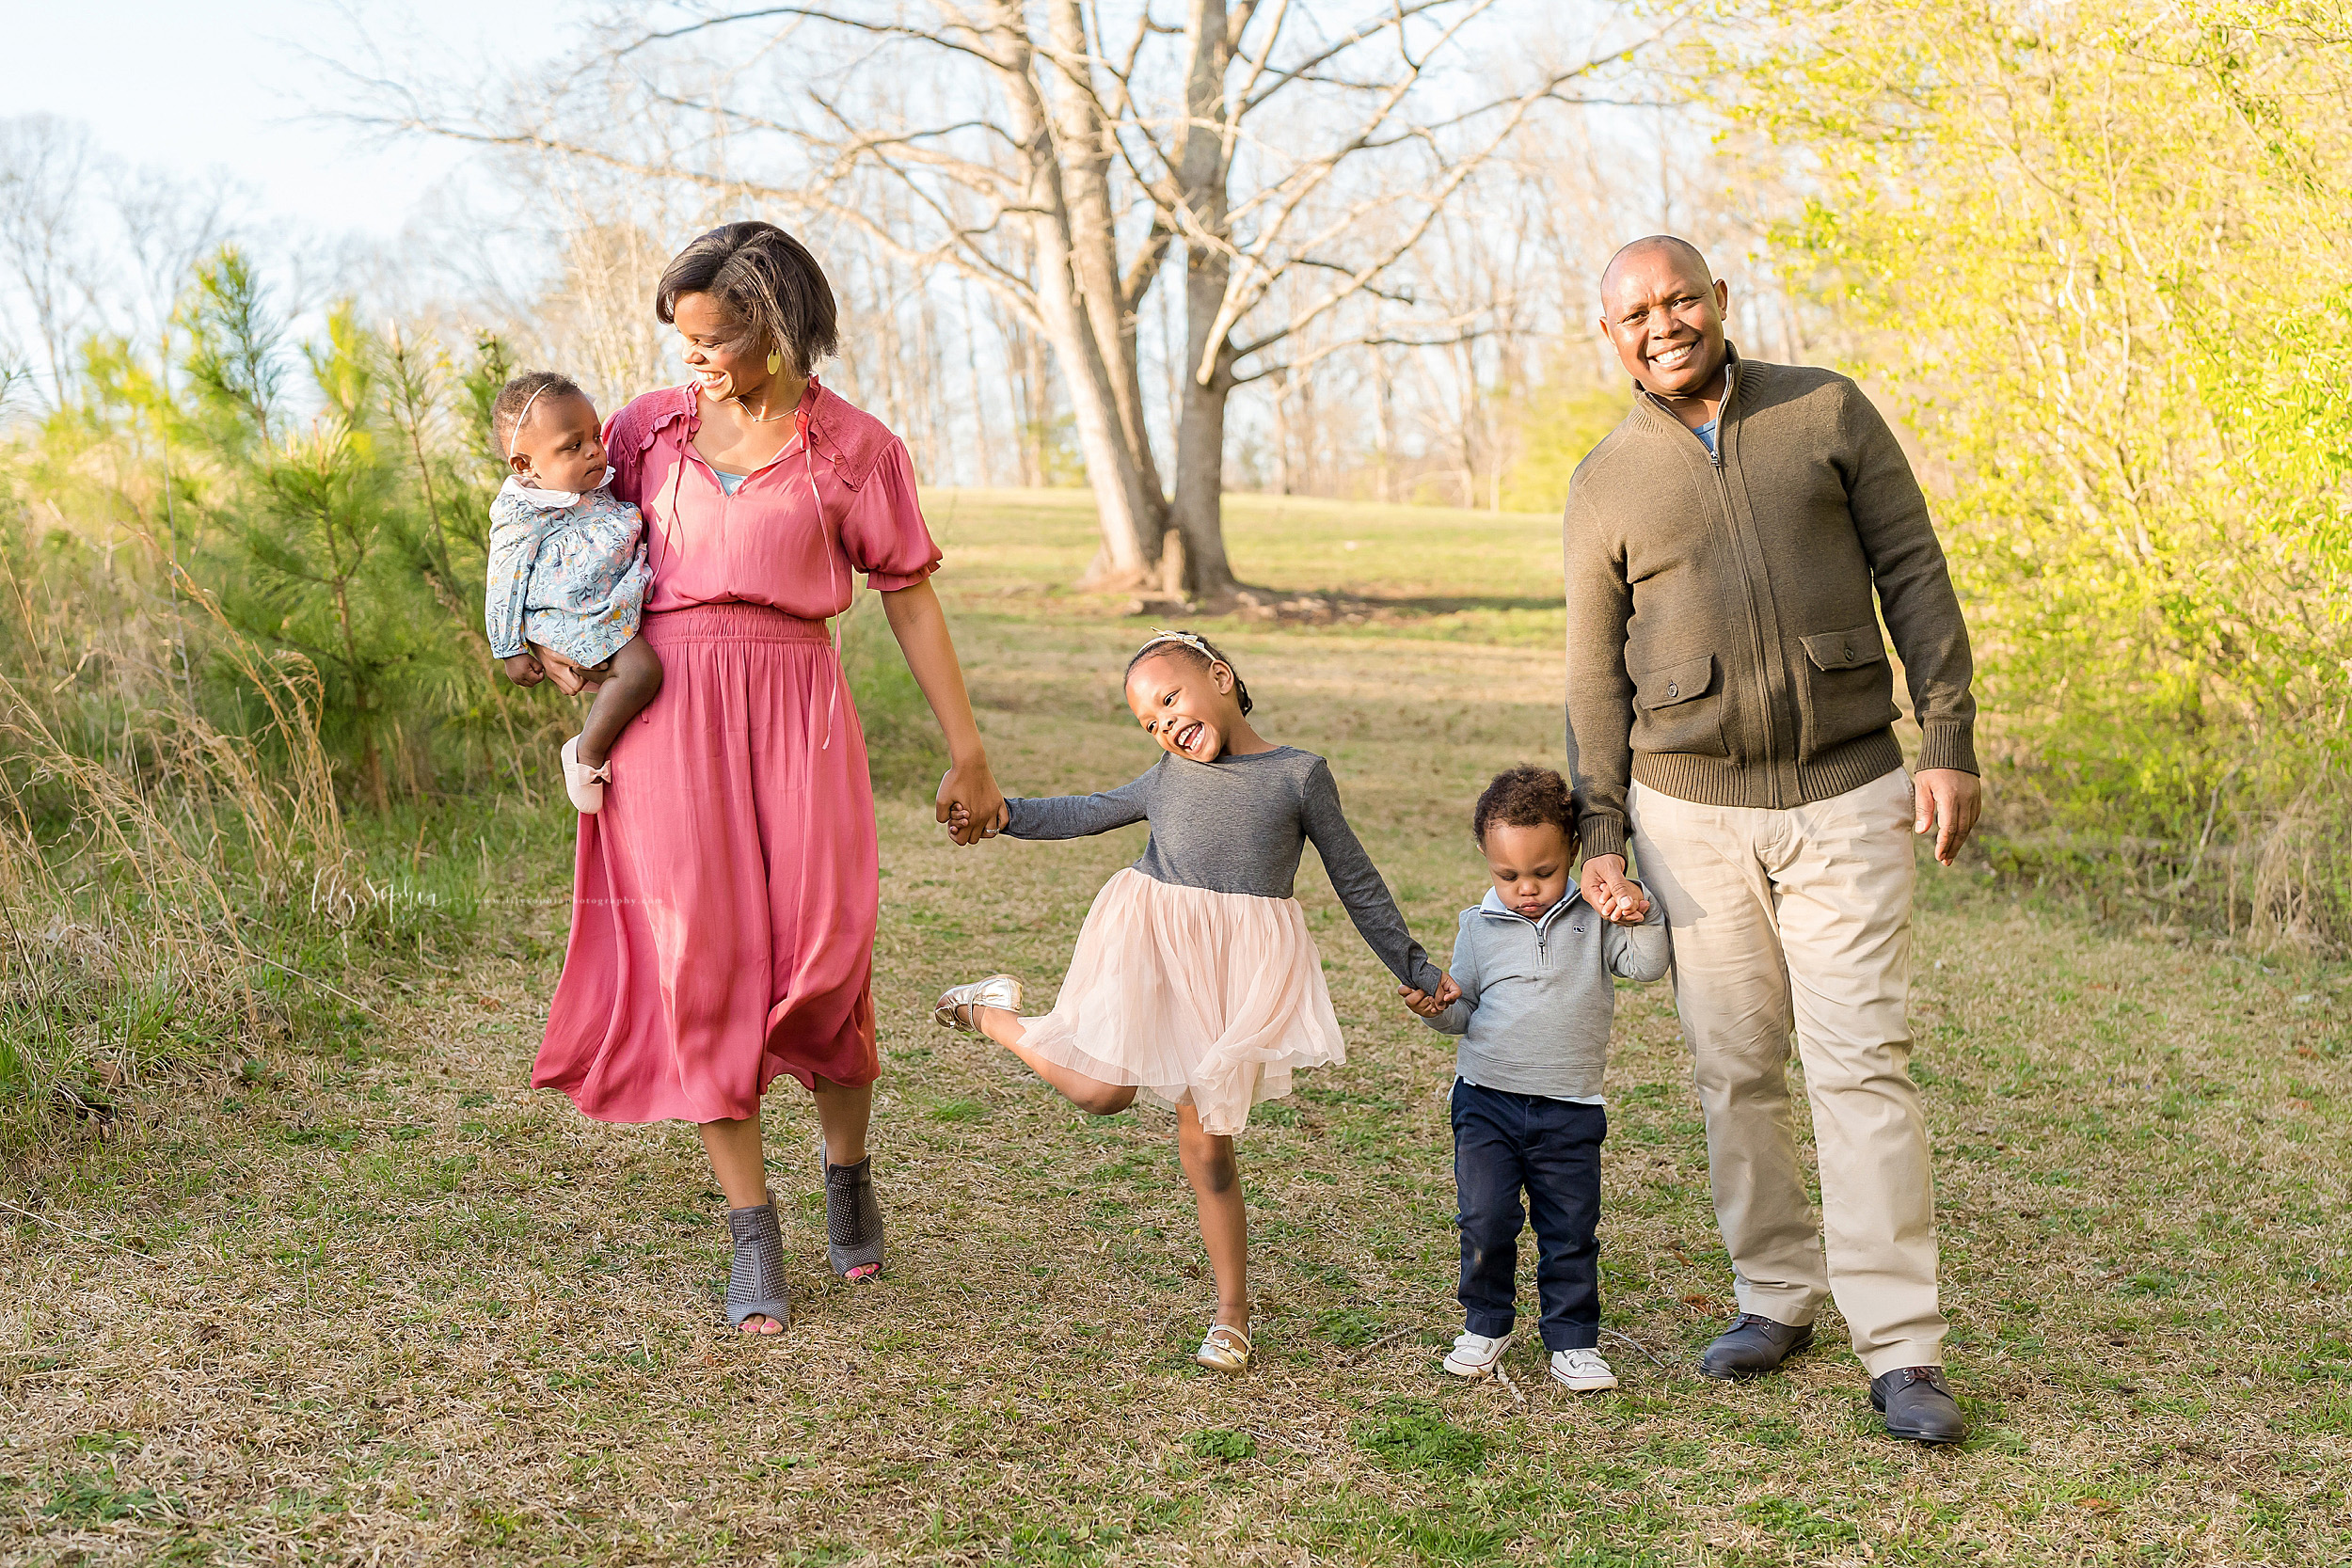 African-American family of five walk in an Atlanta field at sunset.  Mom is on the left holding her one year old daughter on her right hip.  Her other daughter is holding her mom's left hand and her toddler brother's hand.  Dad is on the right holding the toddler's other hand.